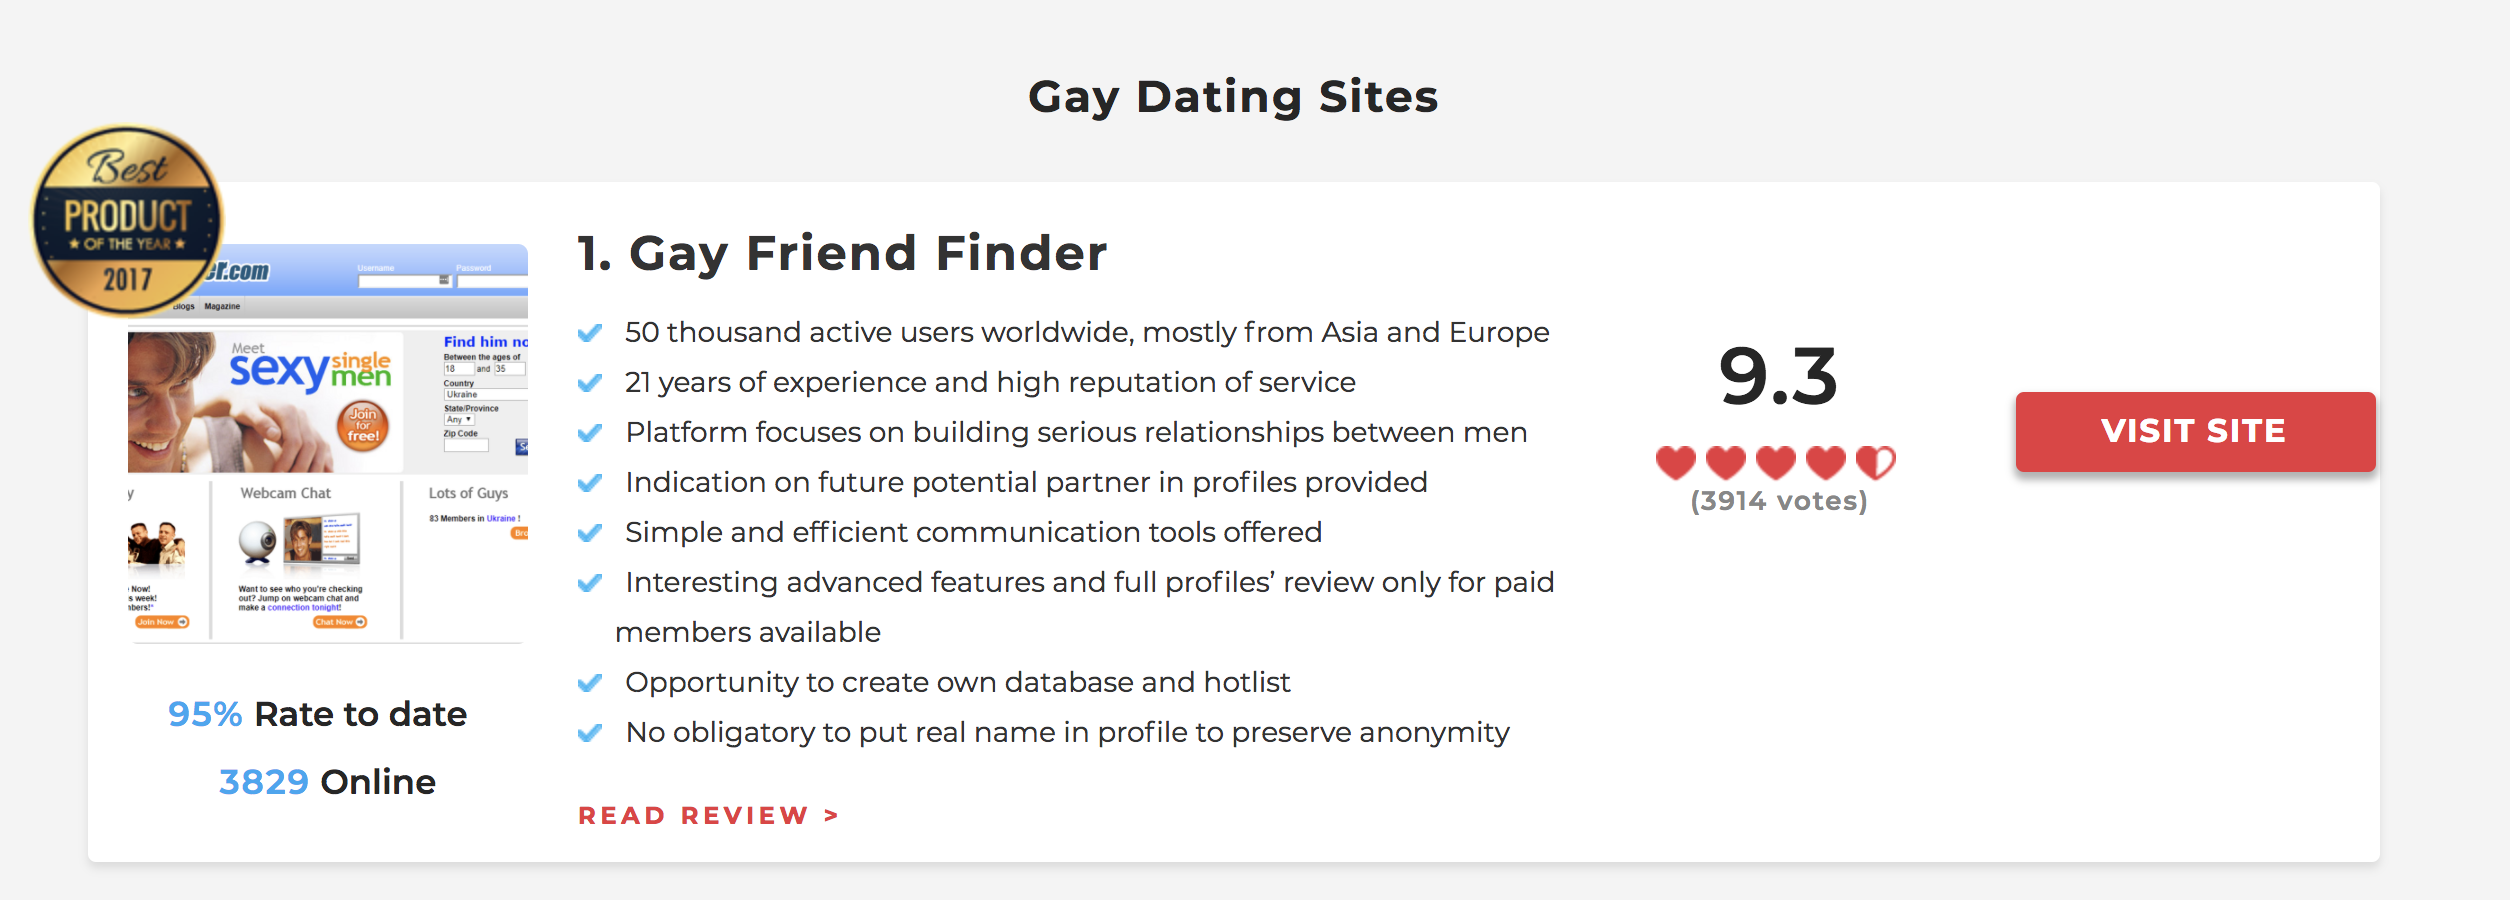 Ateist dating site uk